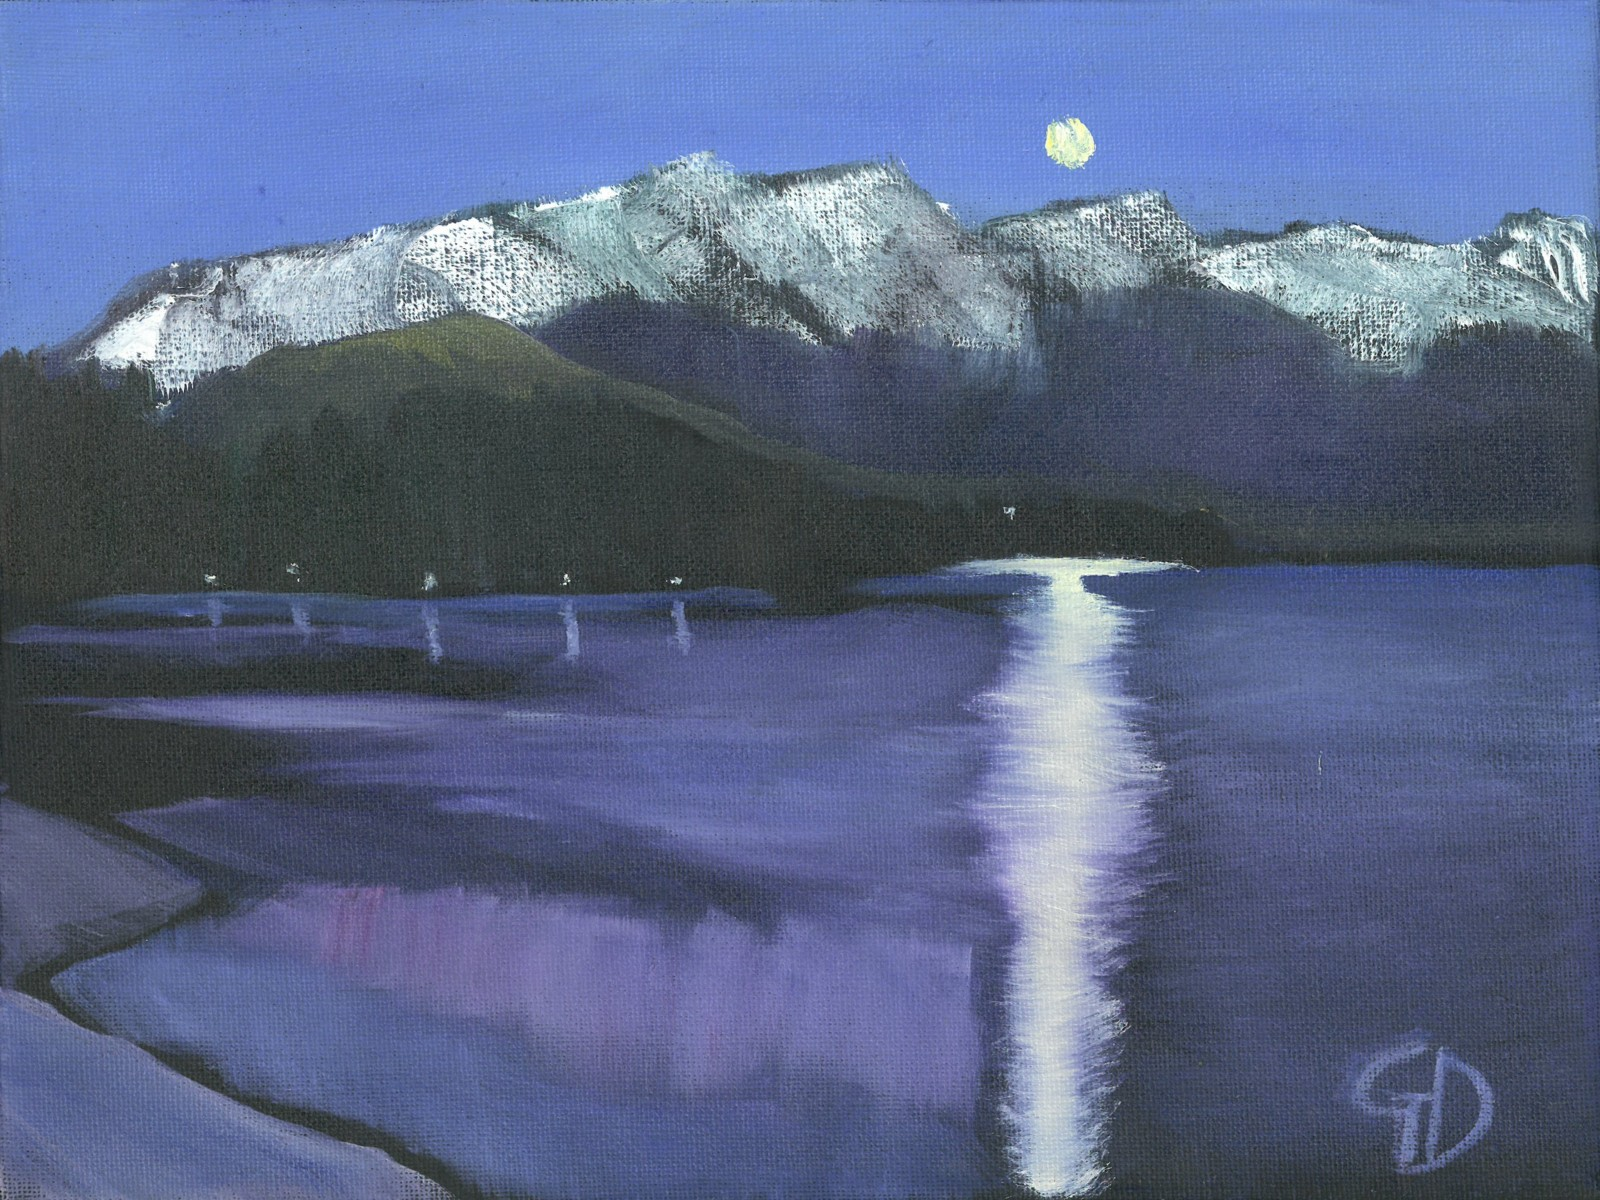 Moon over the Remarkables.jpg - Moon over the Remarkables water-soluble oil on canvas (30.5 x 23 cm) September 2015